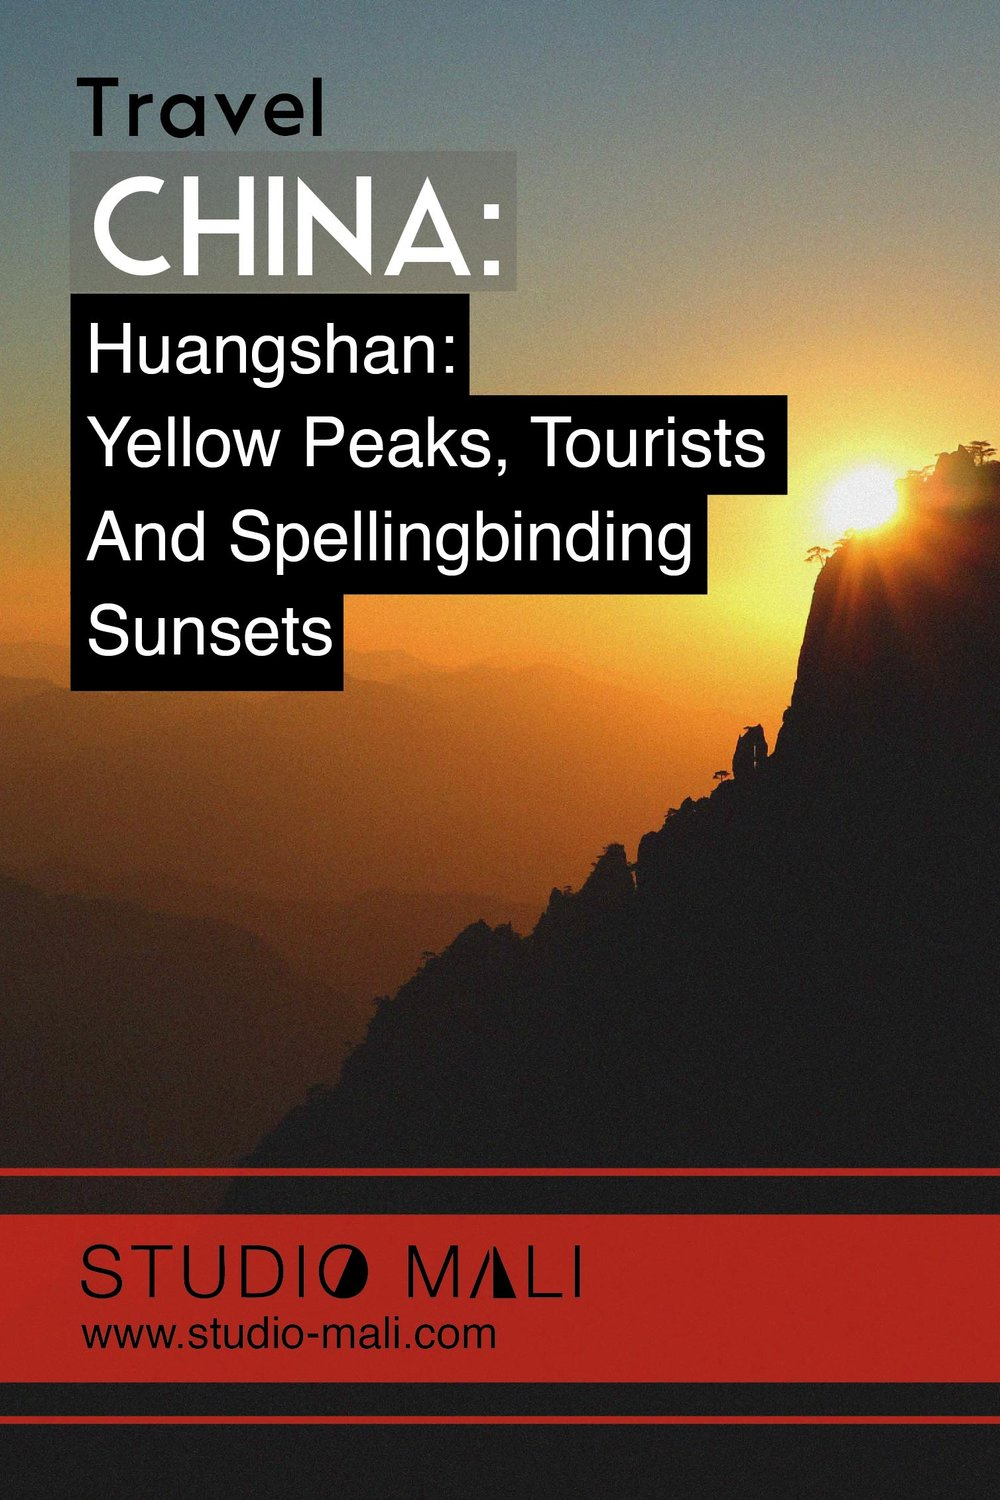 China - Huangshan - Yellow Peaks, Tourists & Spellbinding Sunsets, by Studio Mali